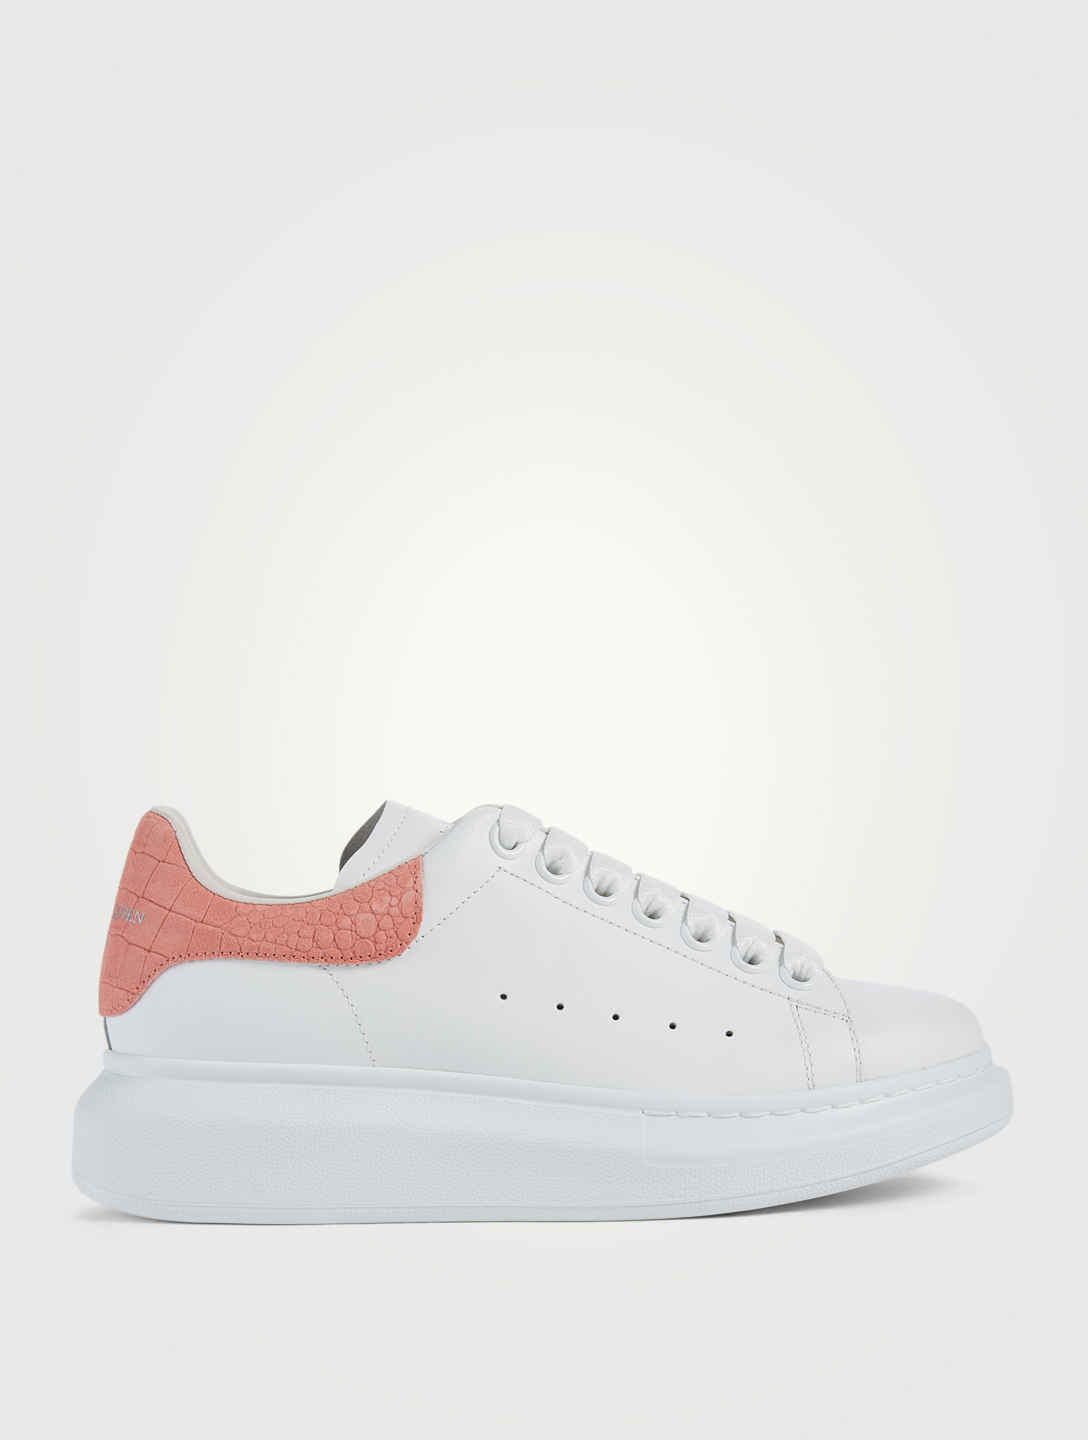 ALEXANDER MCQUEEN Oversized Leather Sneakers With Croc-Embossed Patch Women's Pink